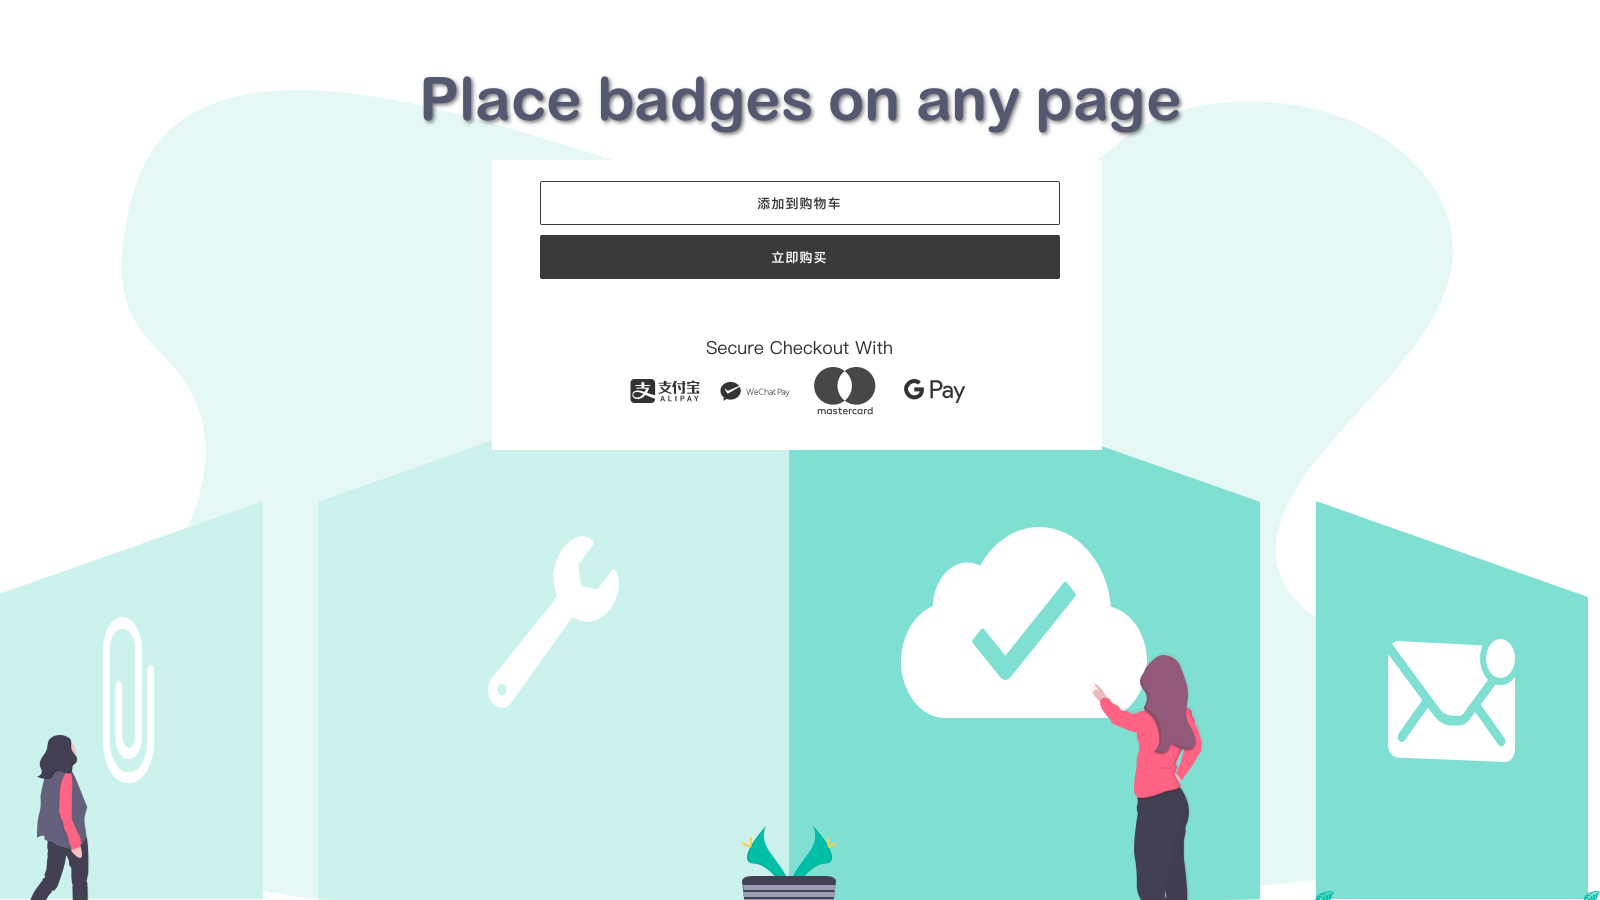 Place badges on any page